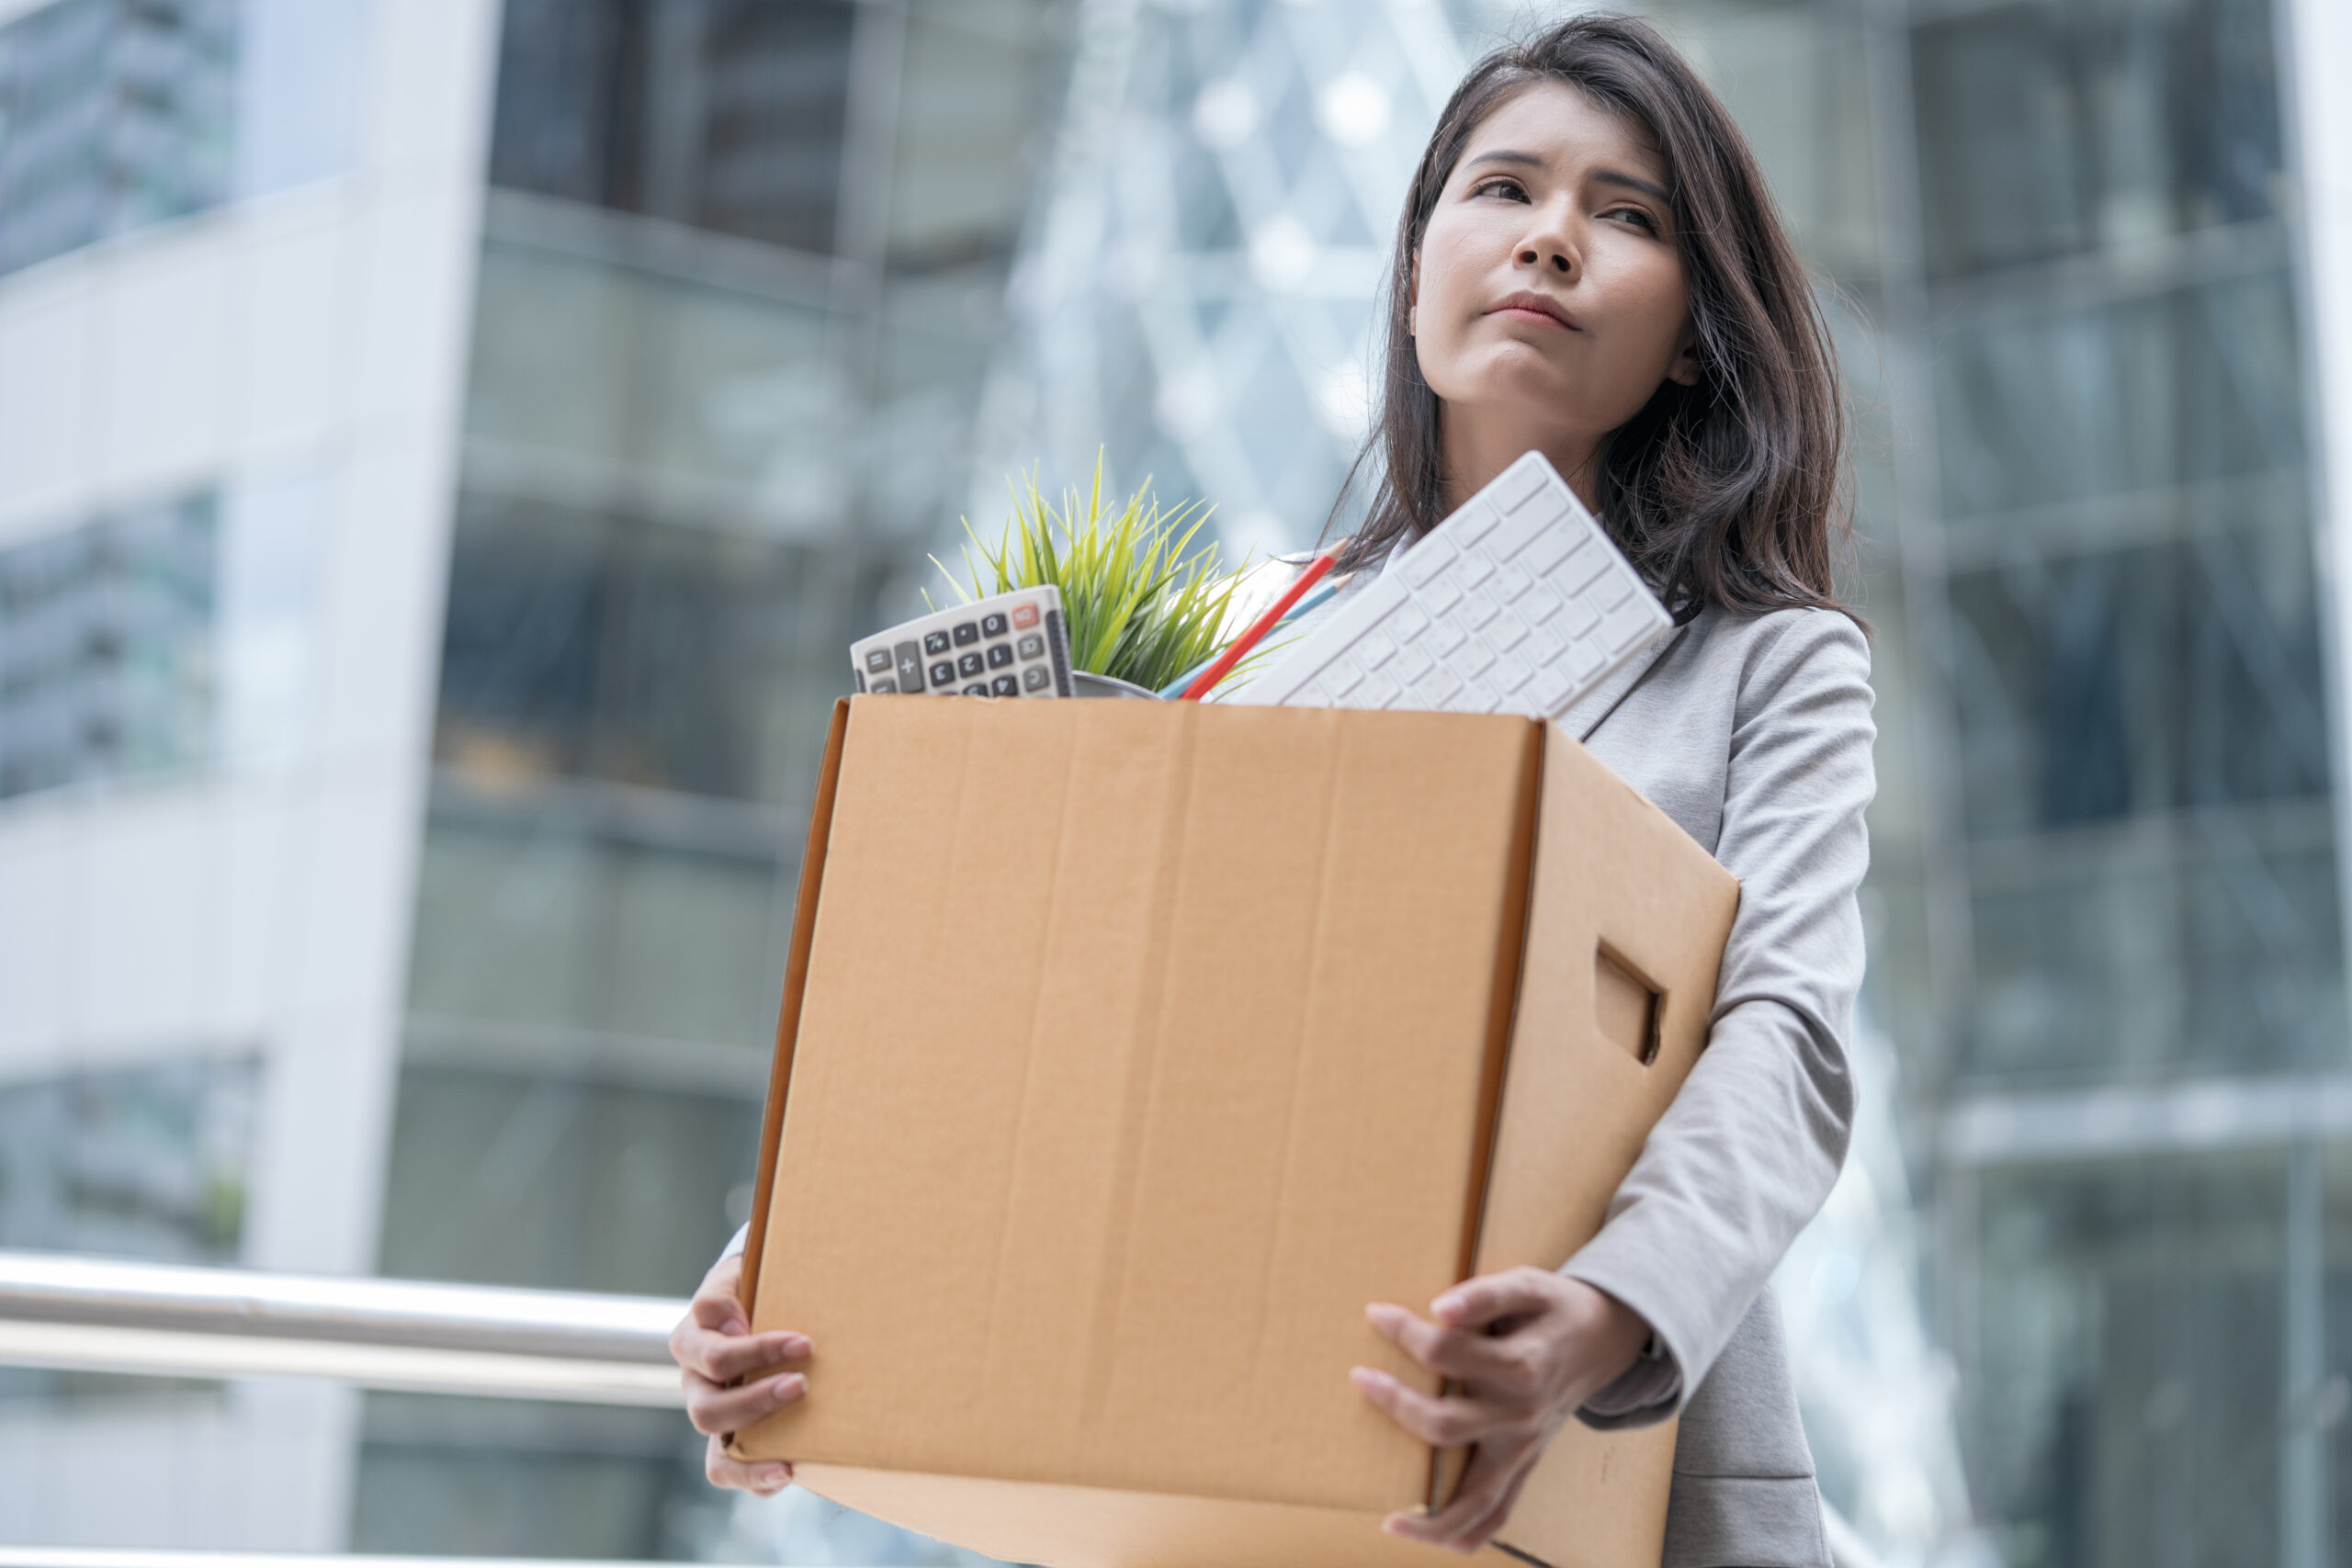 10 Steps to Take After Losing Your Job